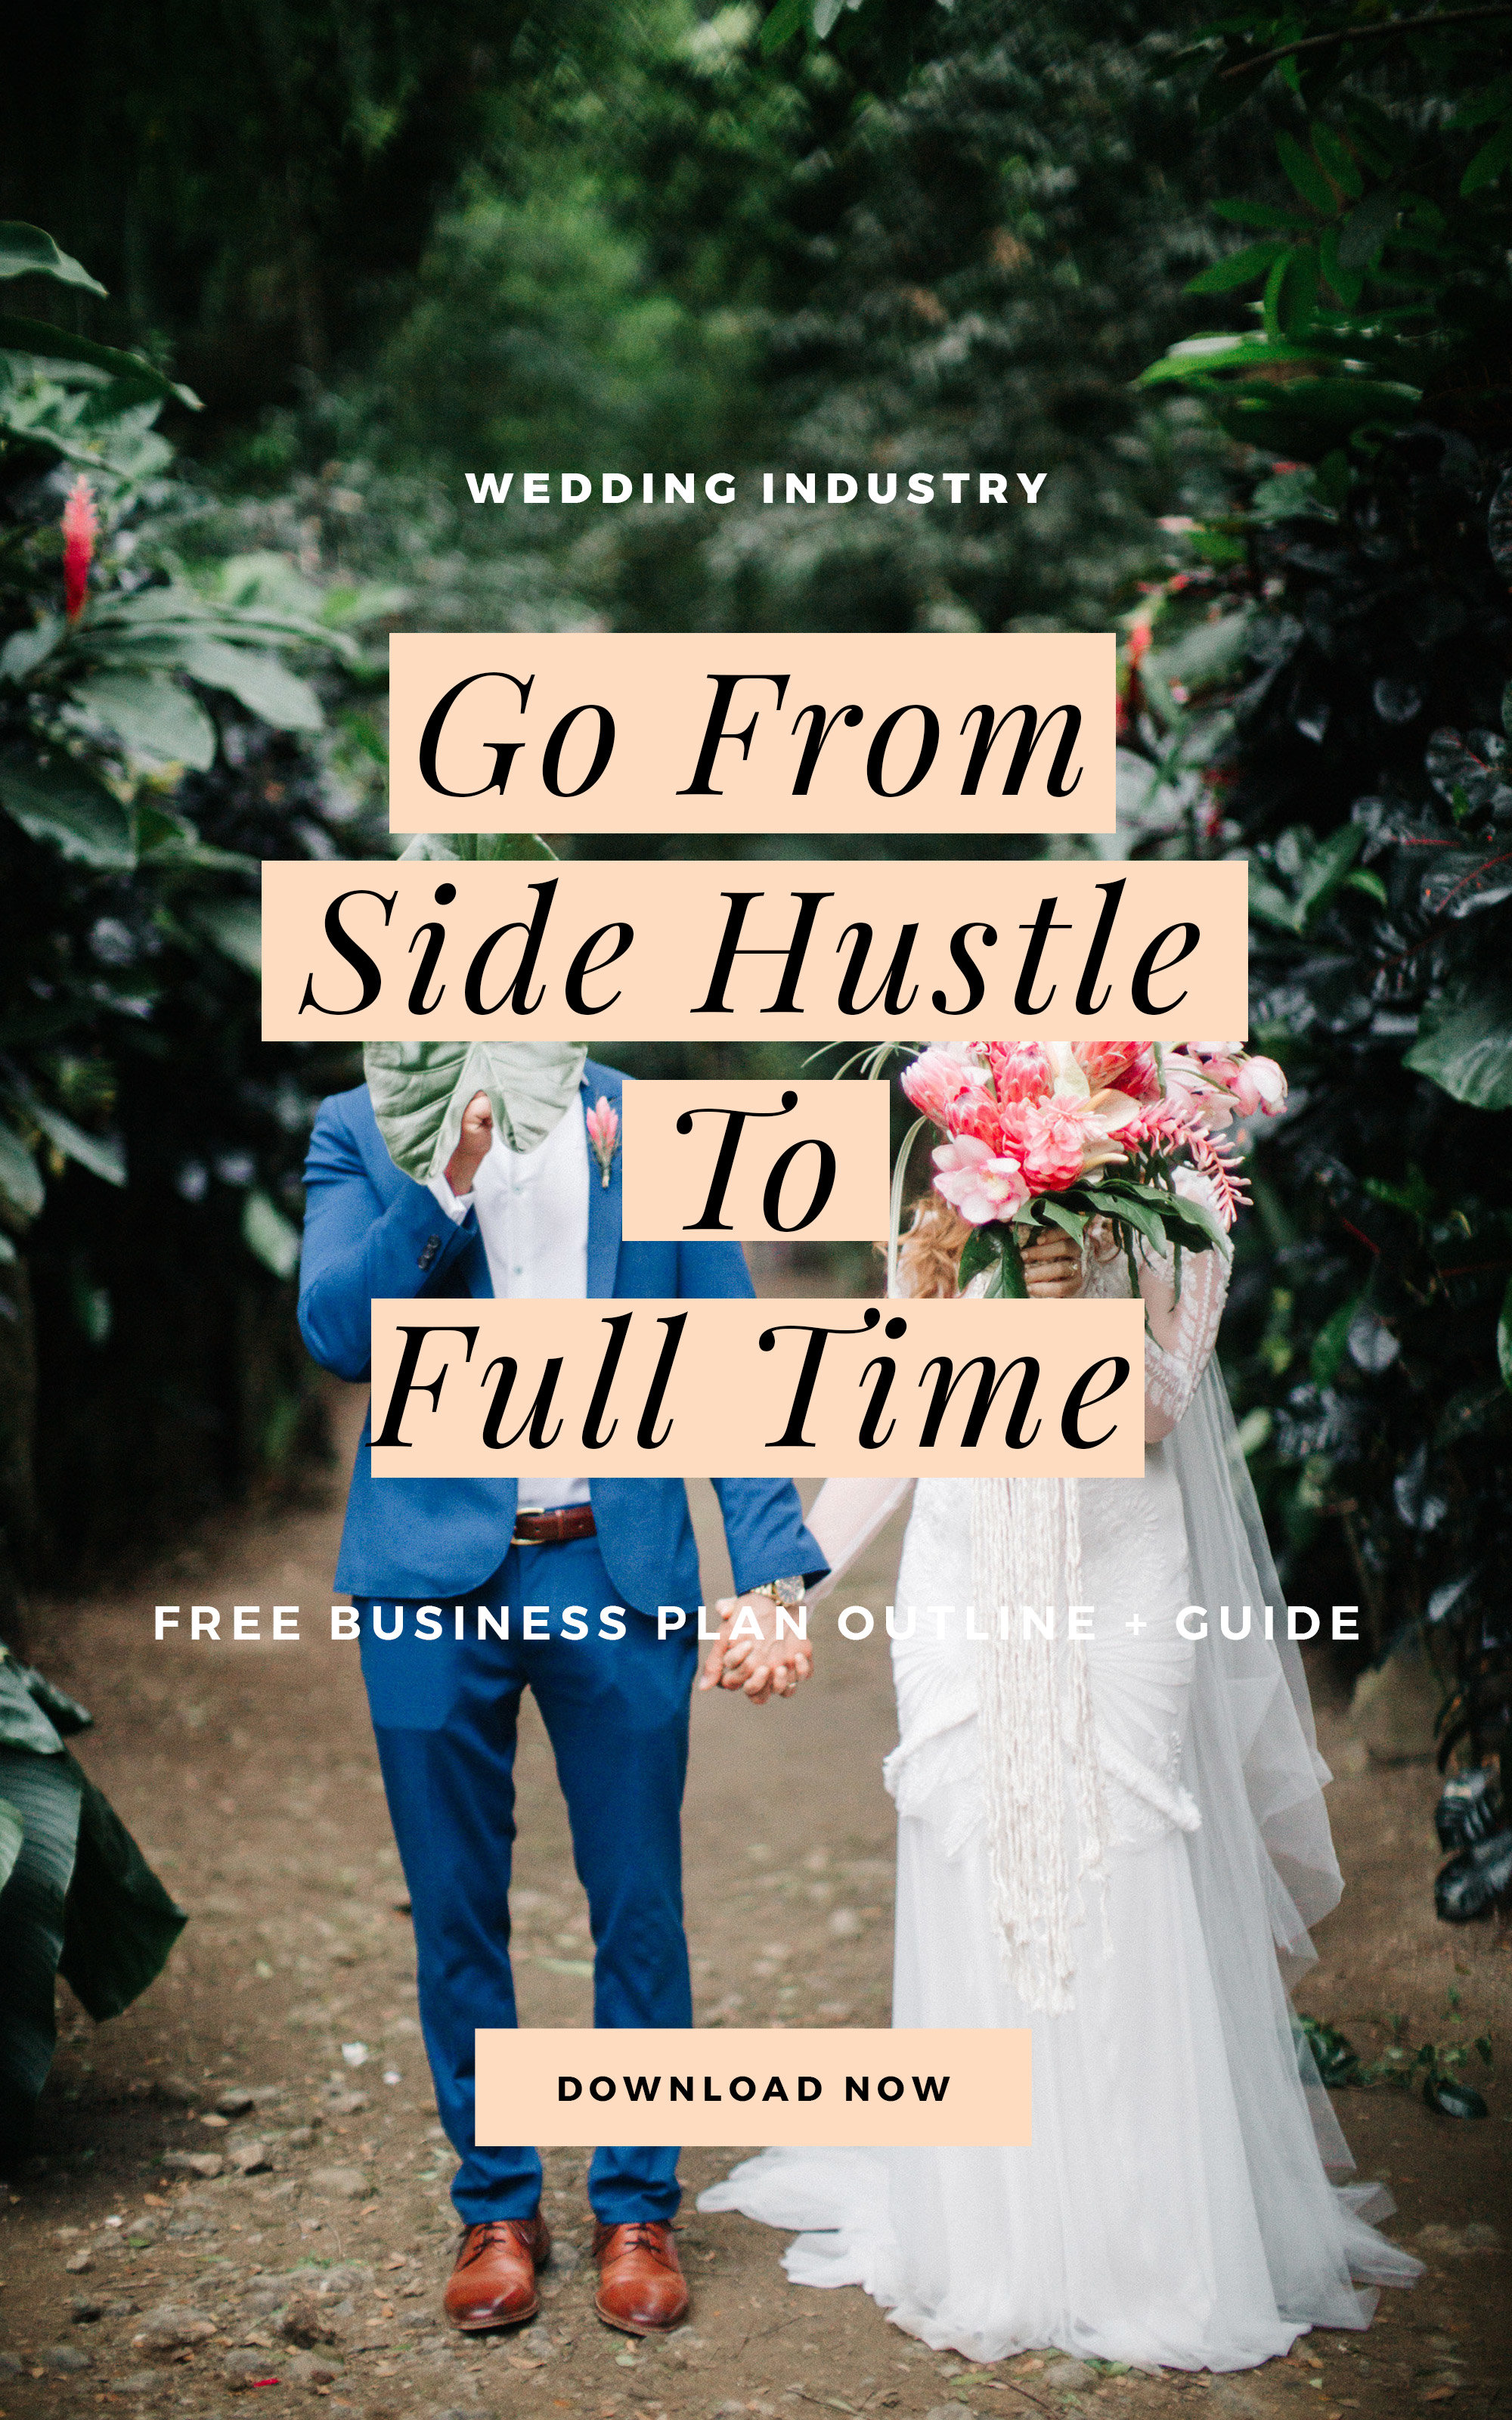 Download this free business plan template for your wedding planning business and go from side hustle to full time.